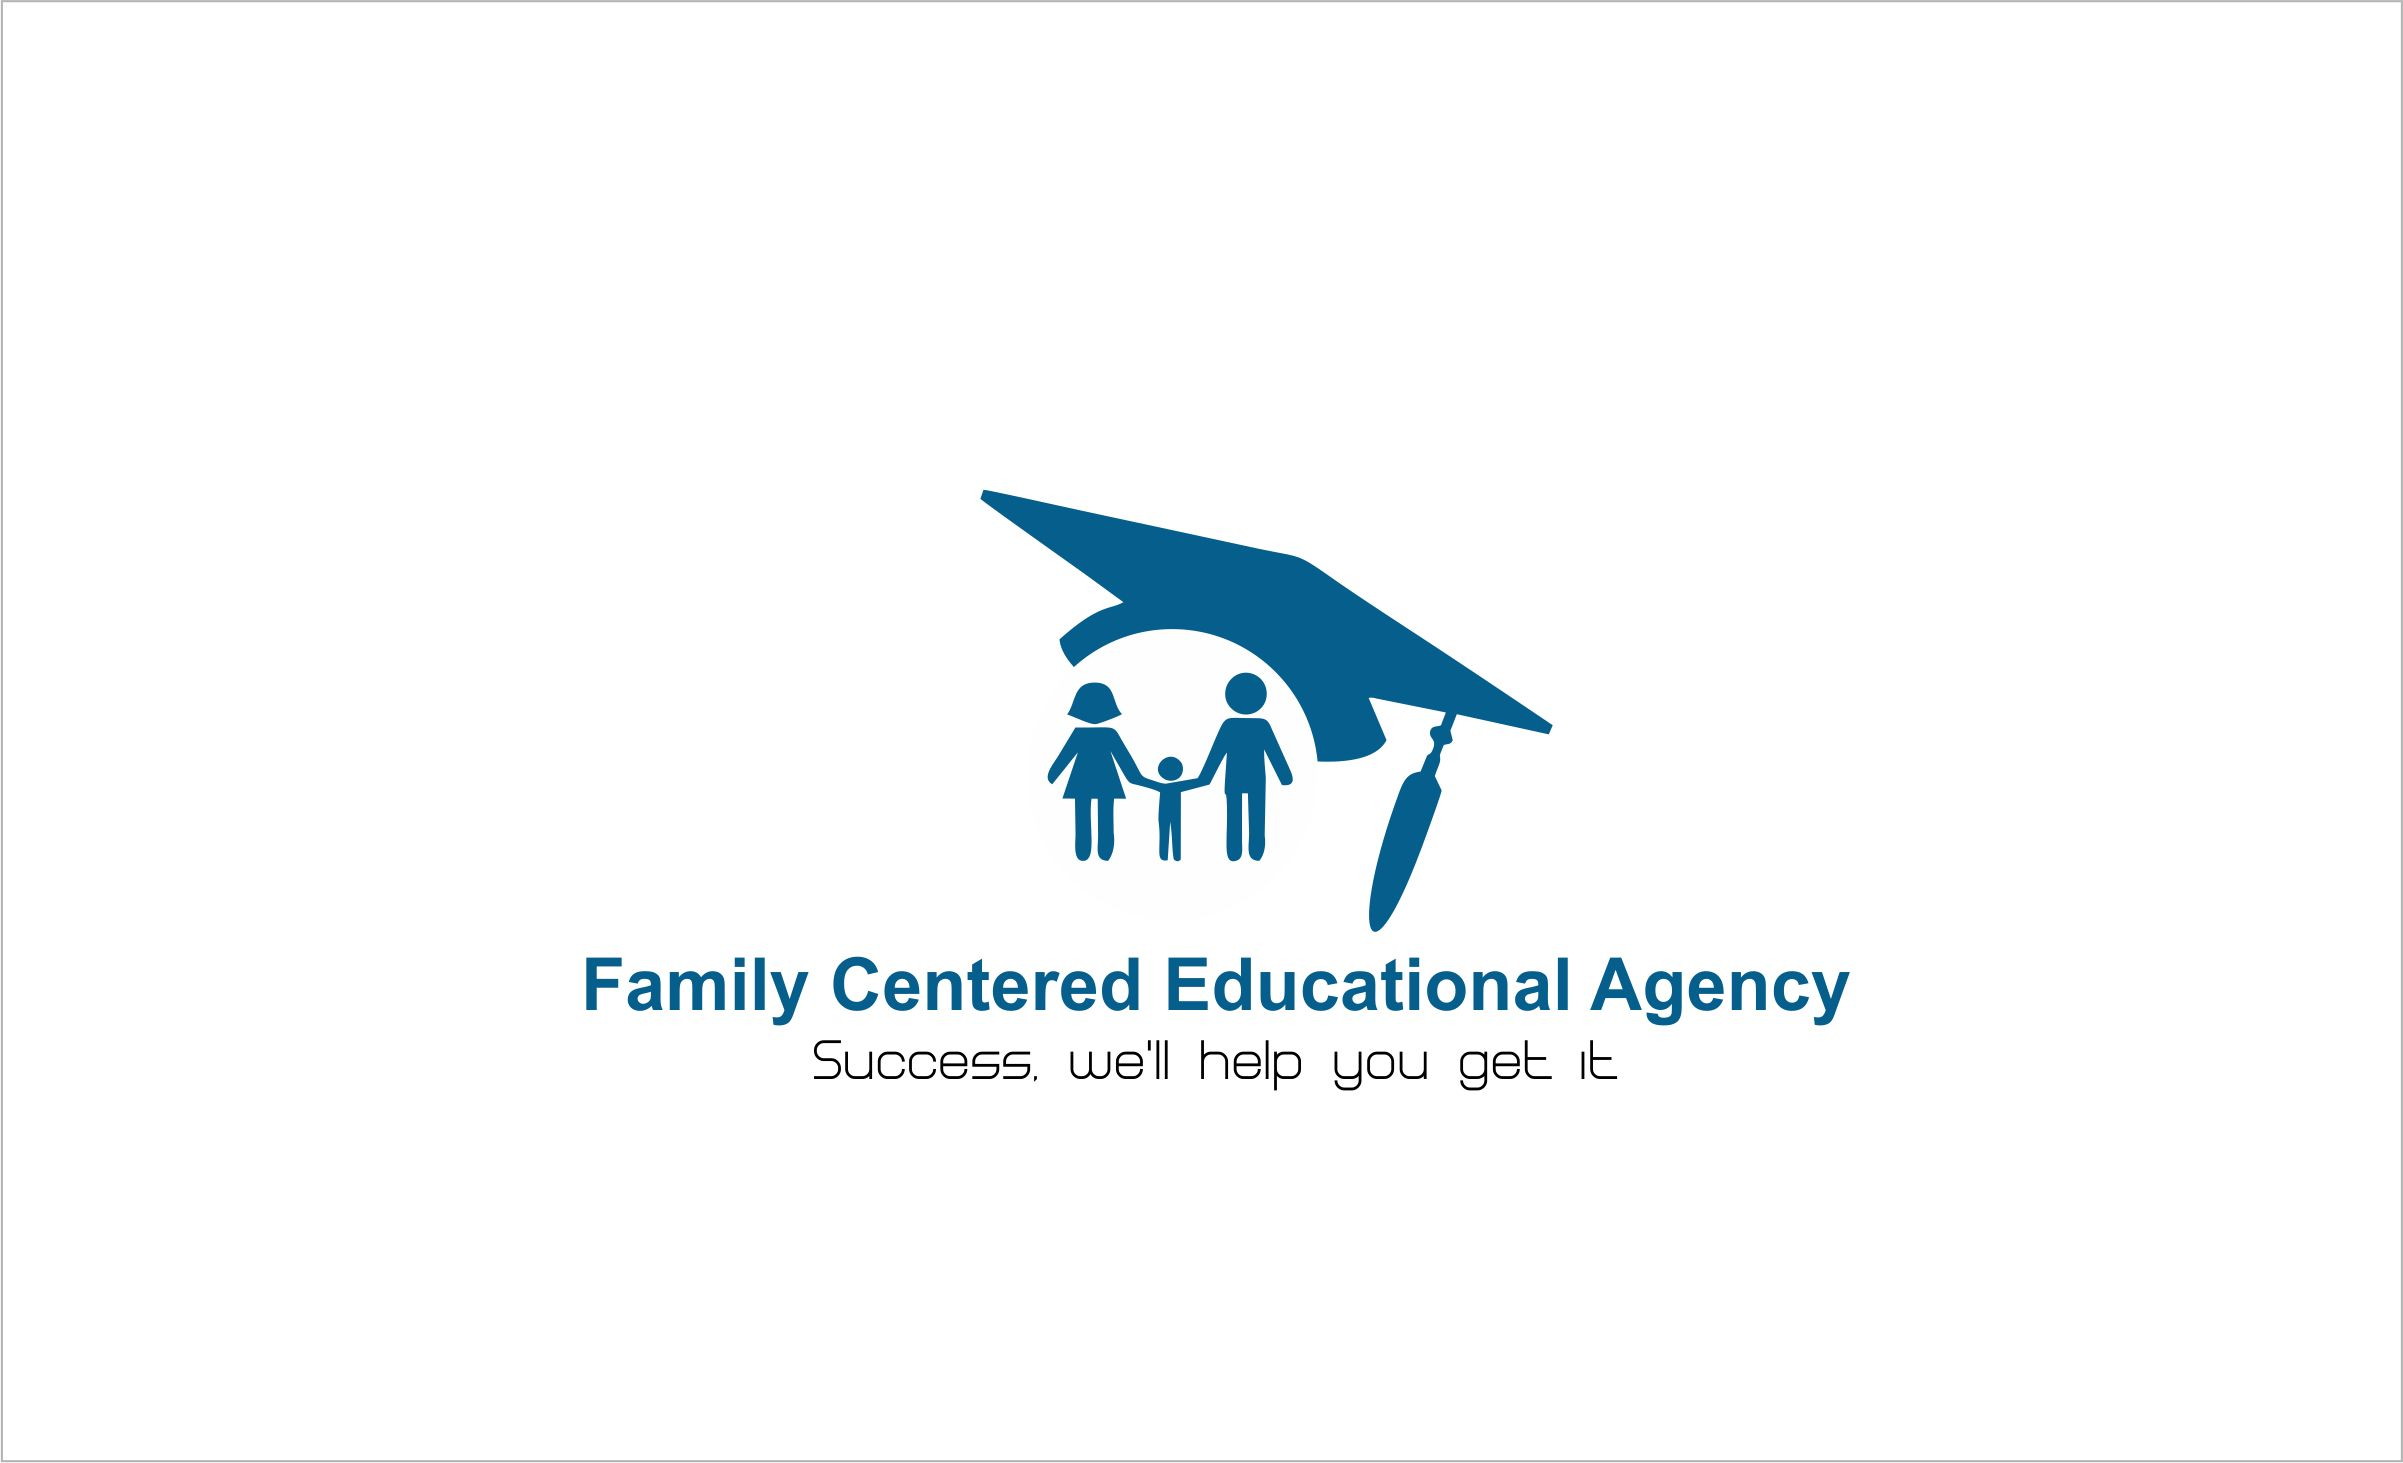 Logo Design by Asif Shaikh - Entry No. 53 in the Logo Design Contest Captivating Logo Design for Family Centered Educational Agency.